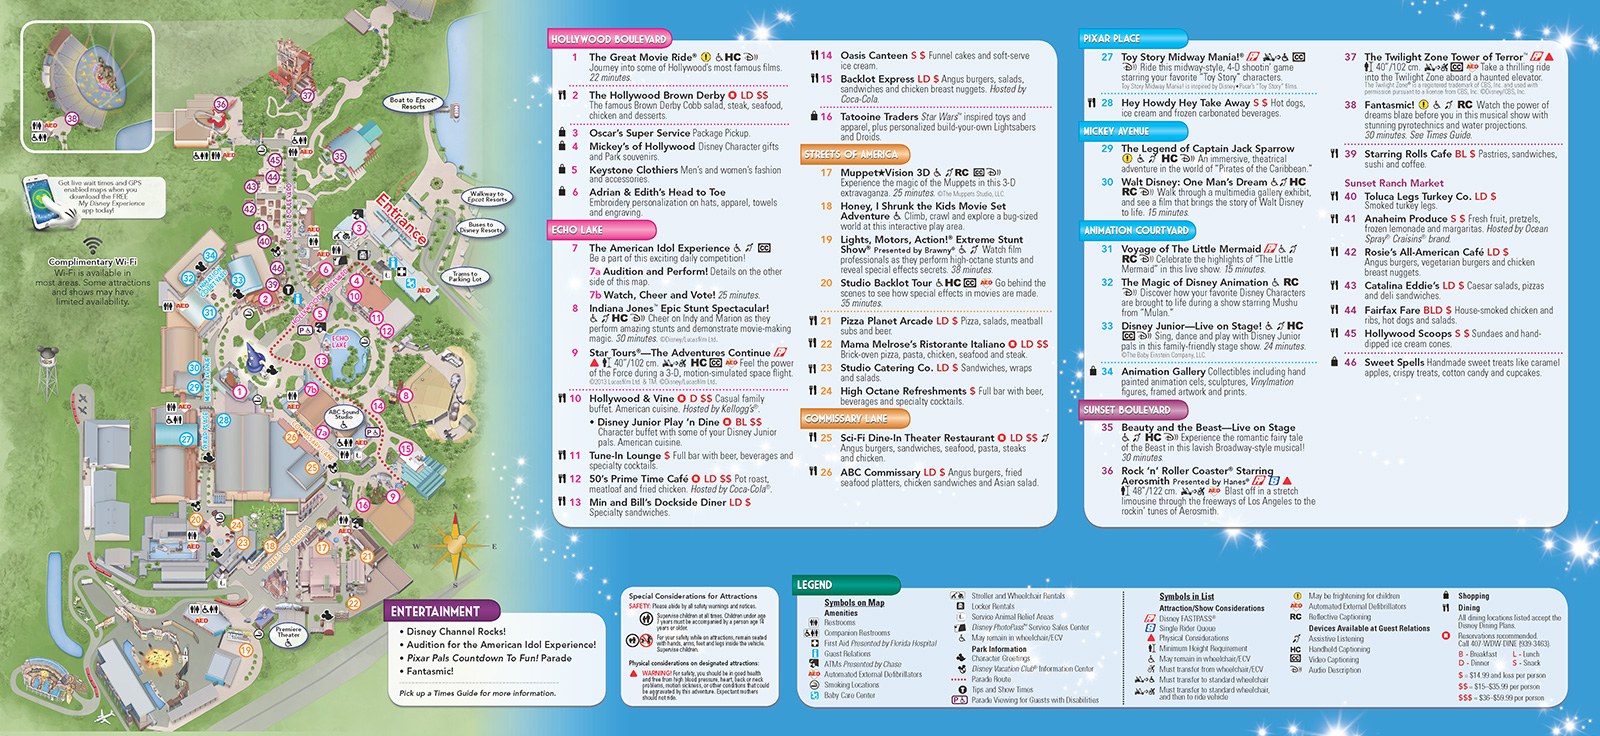 Disney Los Angeles Map.New 2013 Park Maps And Times Guides Photo 4 Of 20